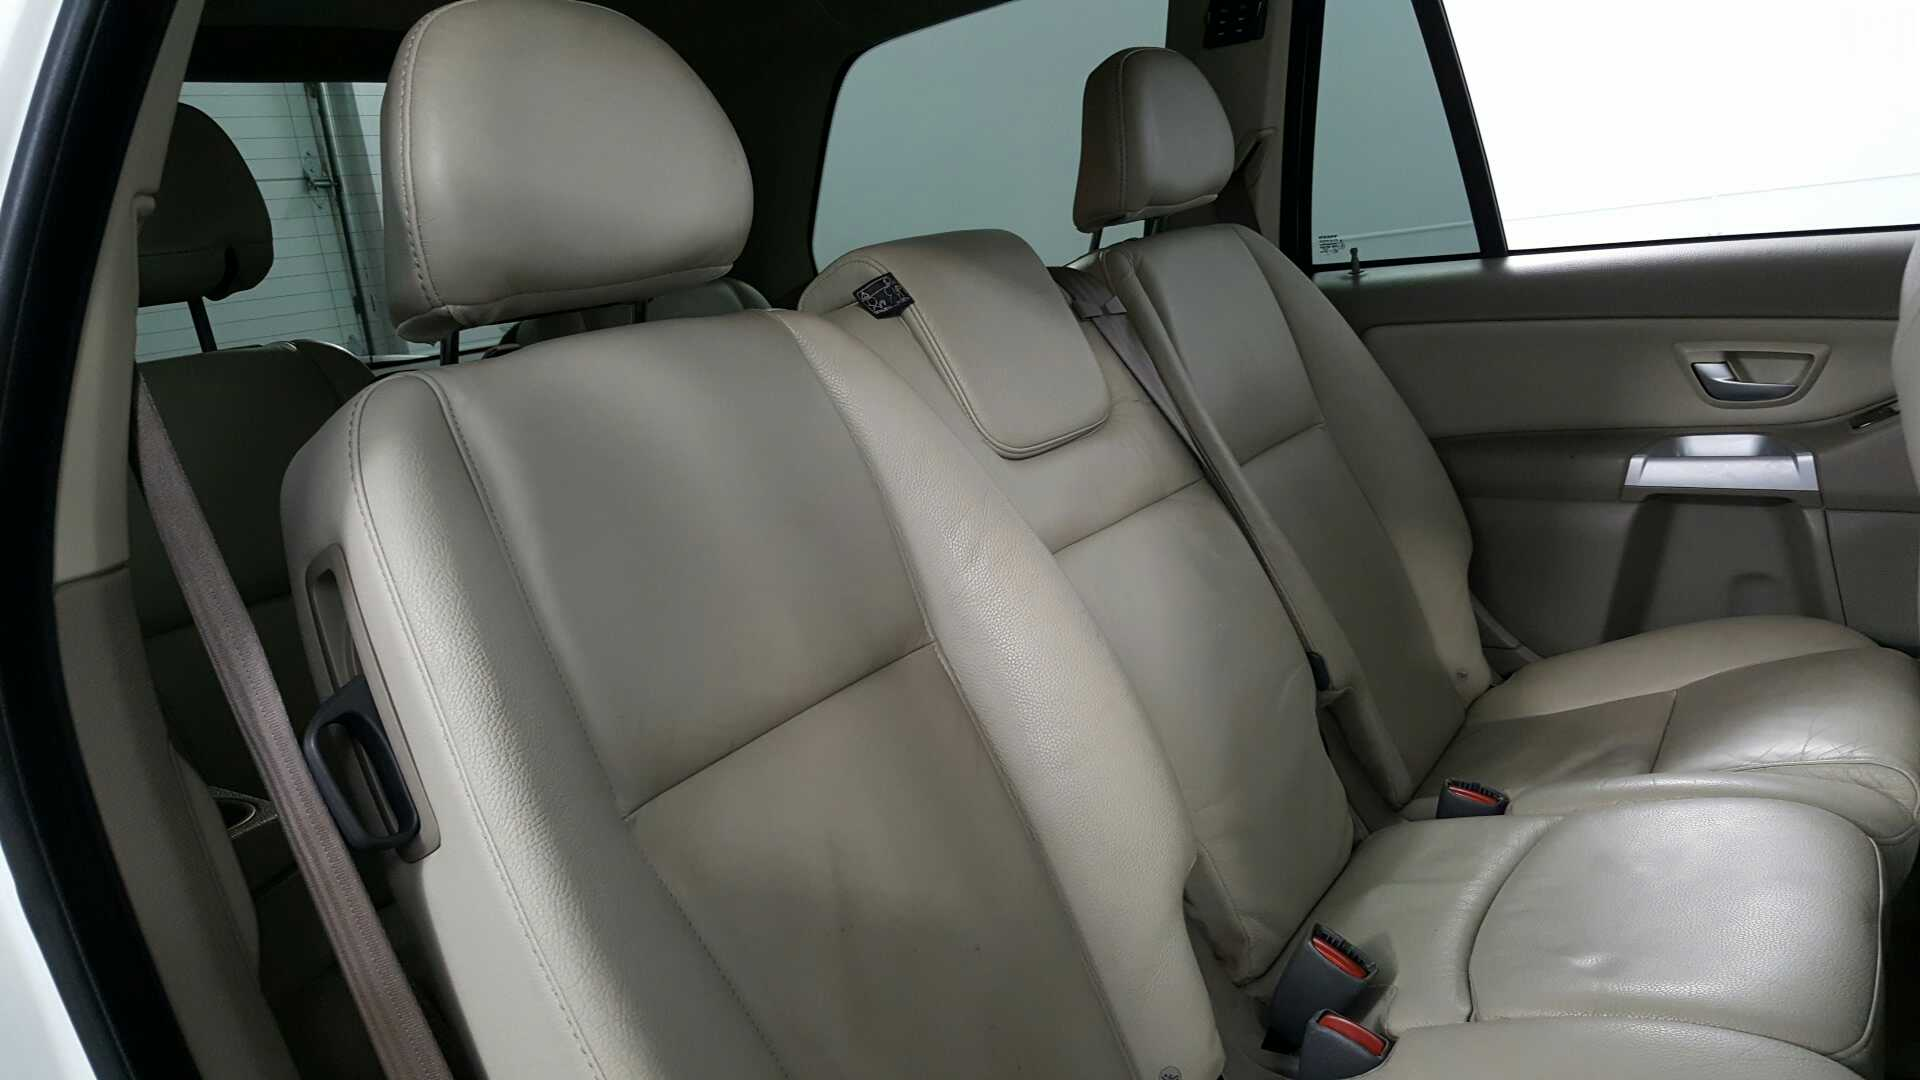 PREMIUM QUILTED REAR SEAT COVER FOR VOLVO XC90 2.5T 02-